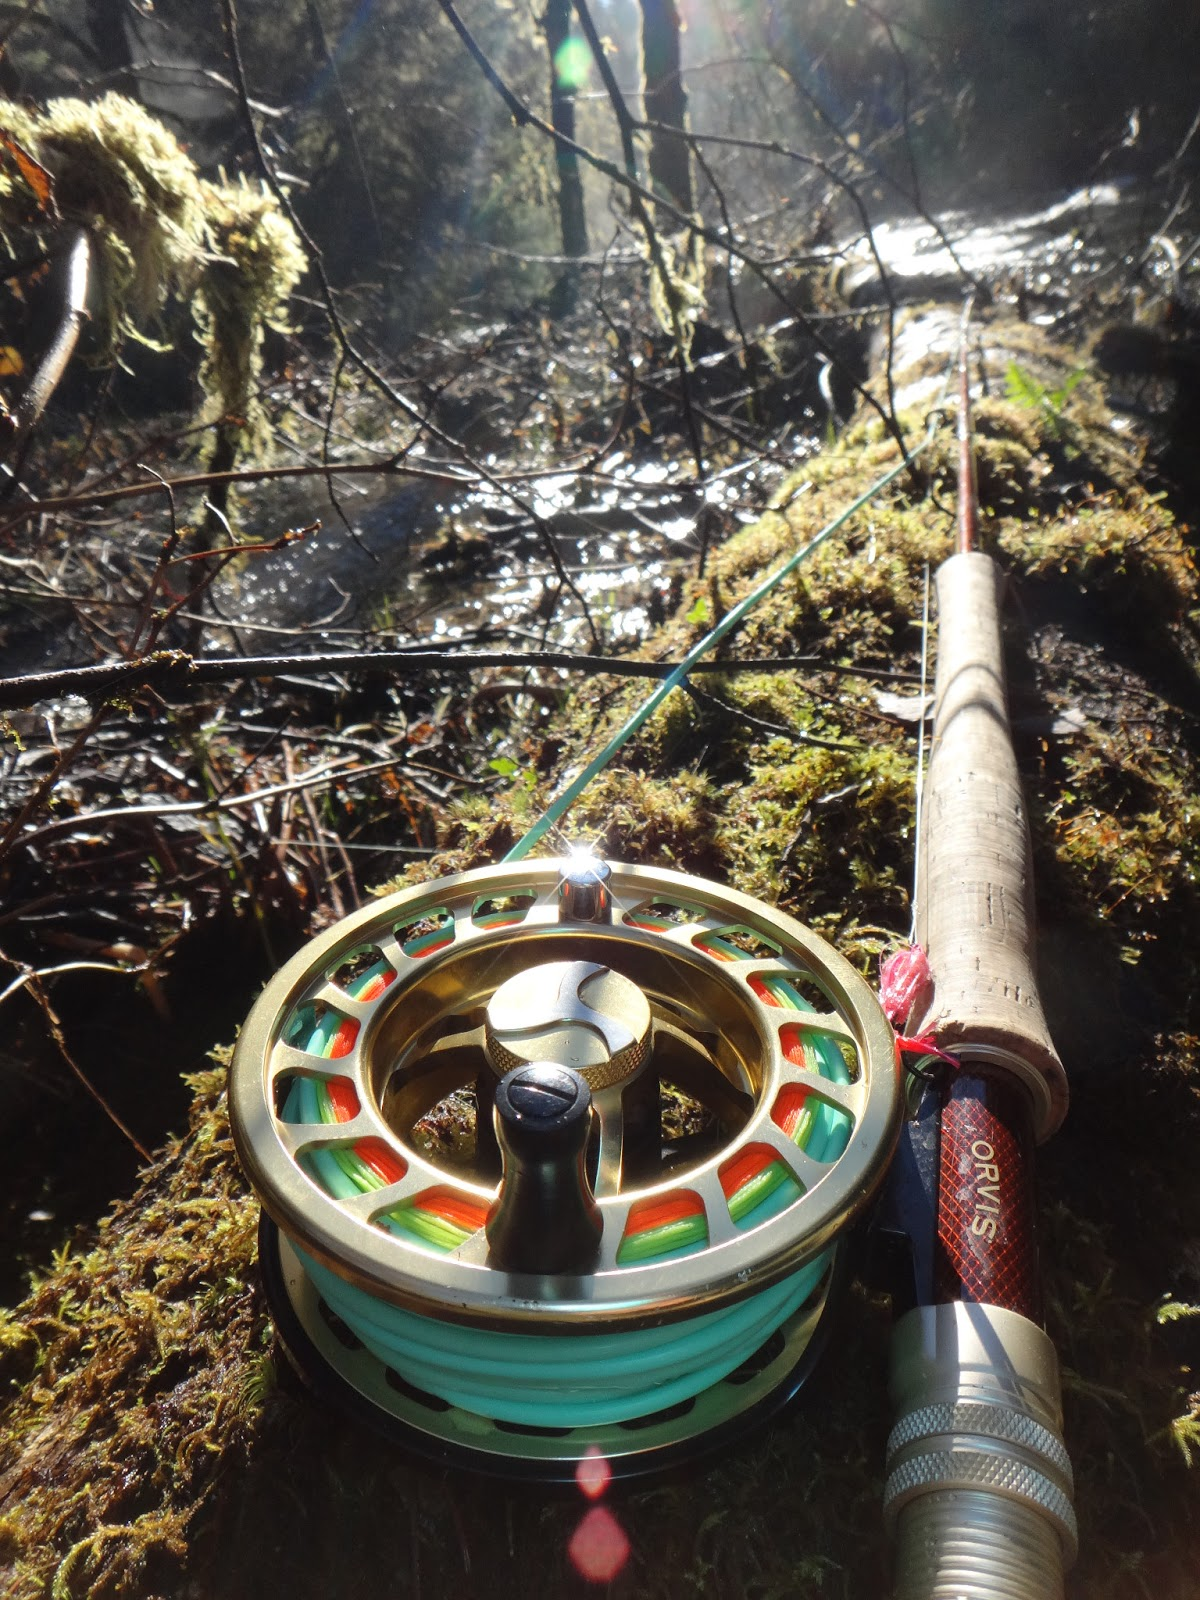 Orvis Access Switch Rod And Mirage Reel With Airflos 480 Grain Skagit Head